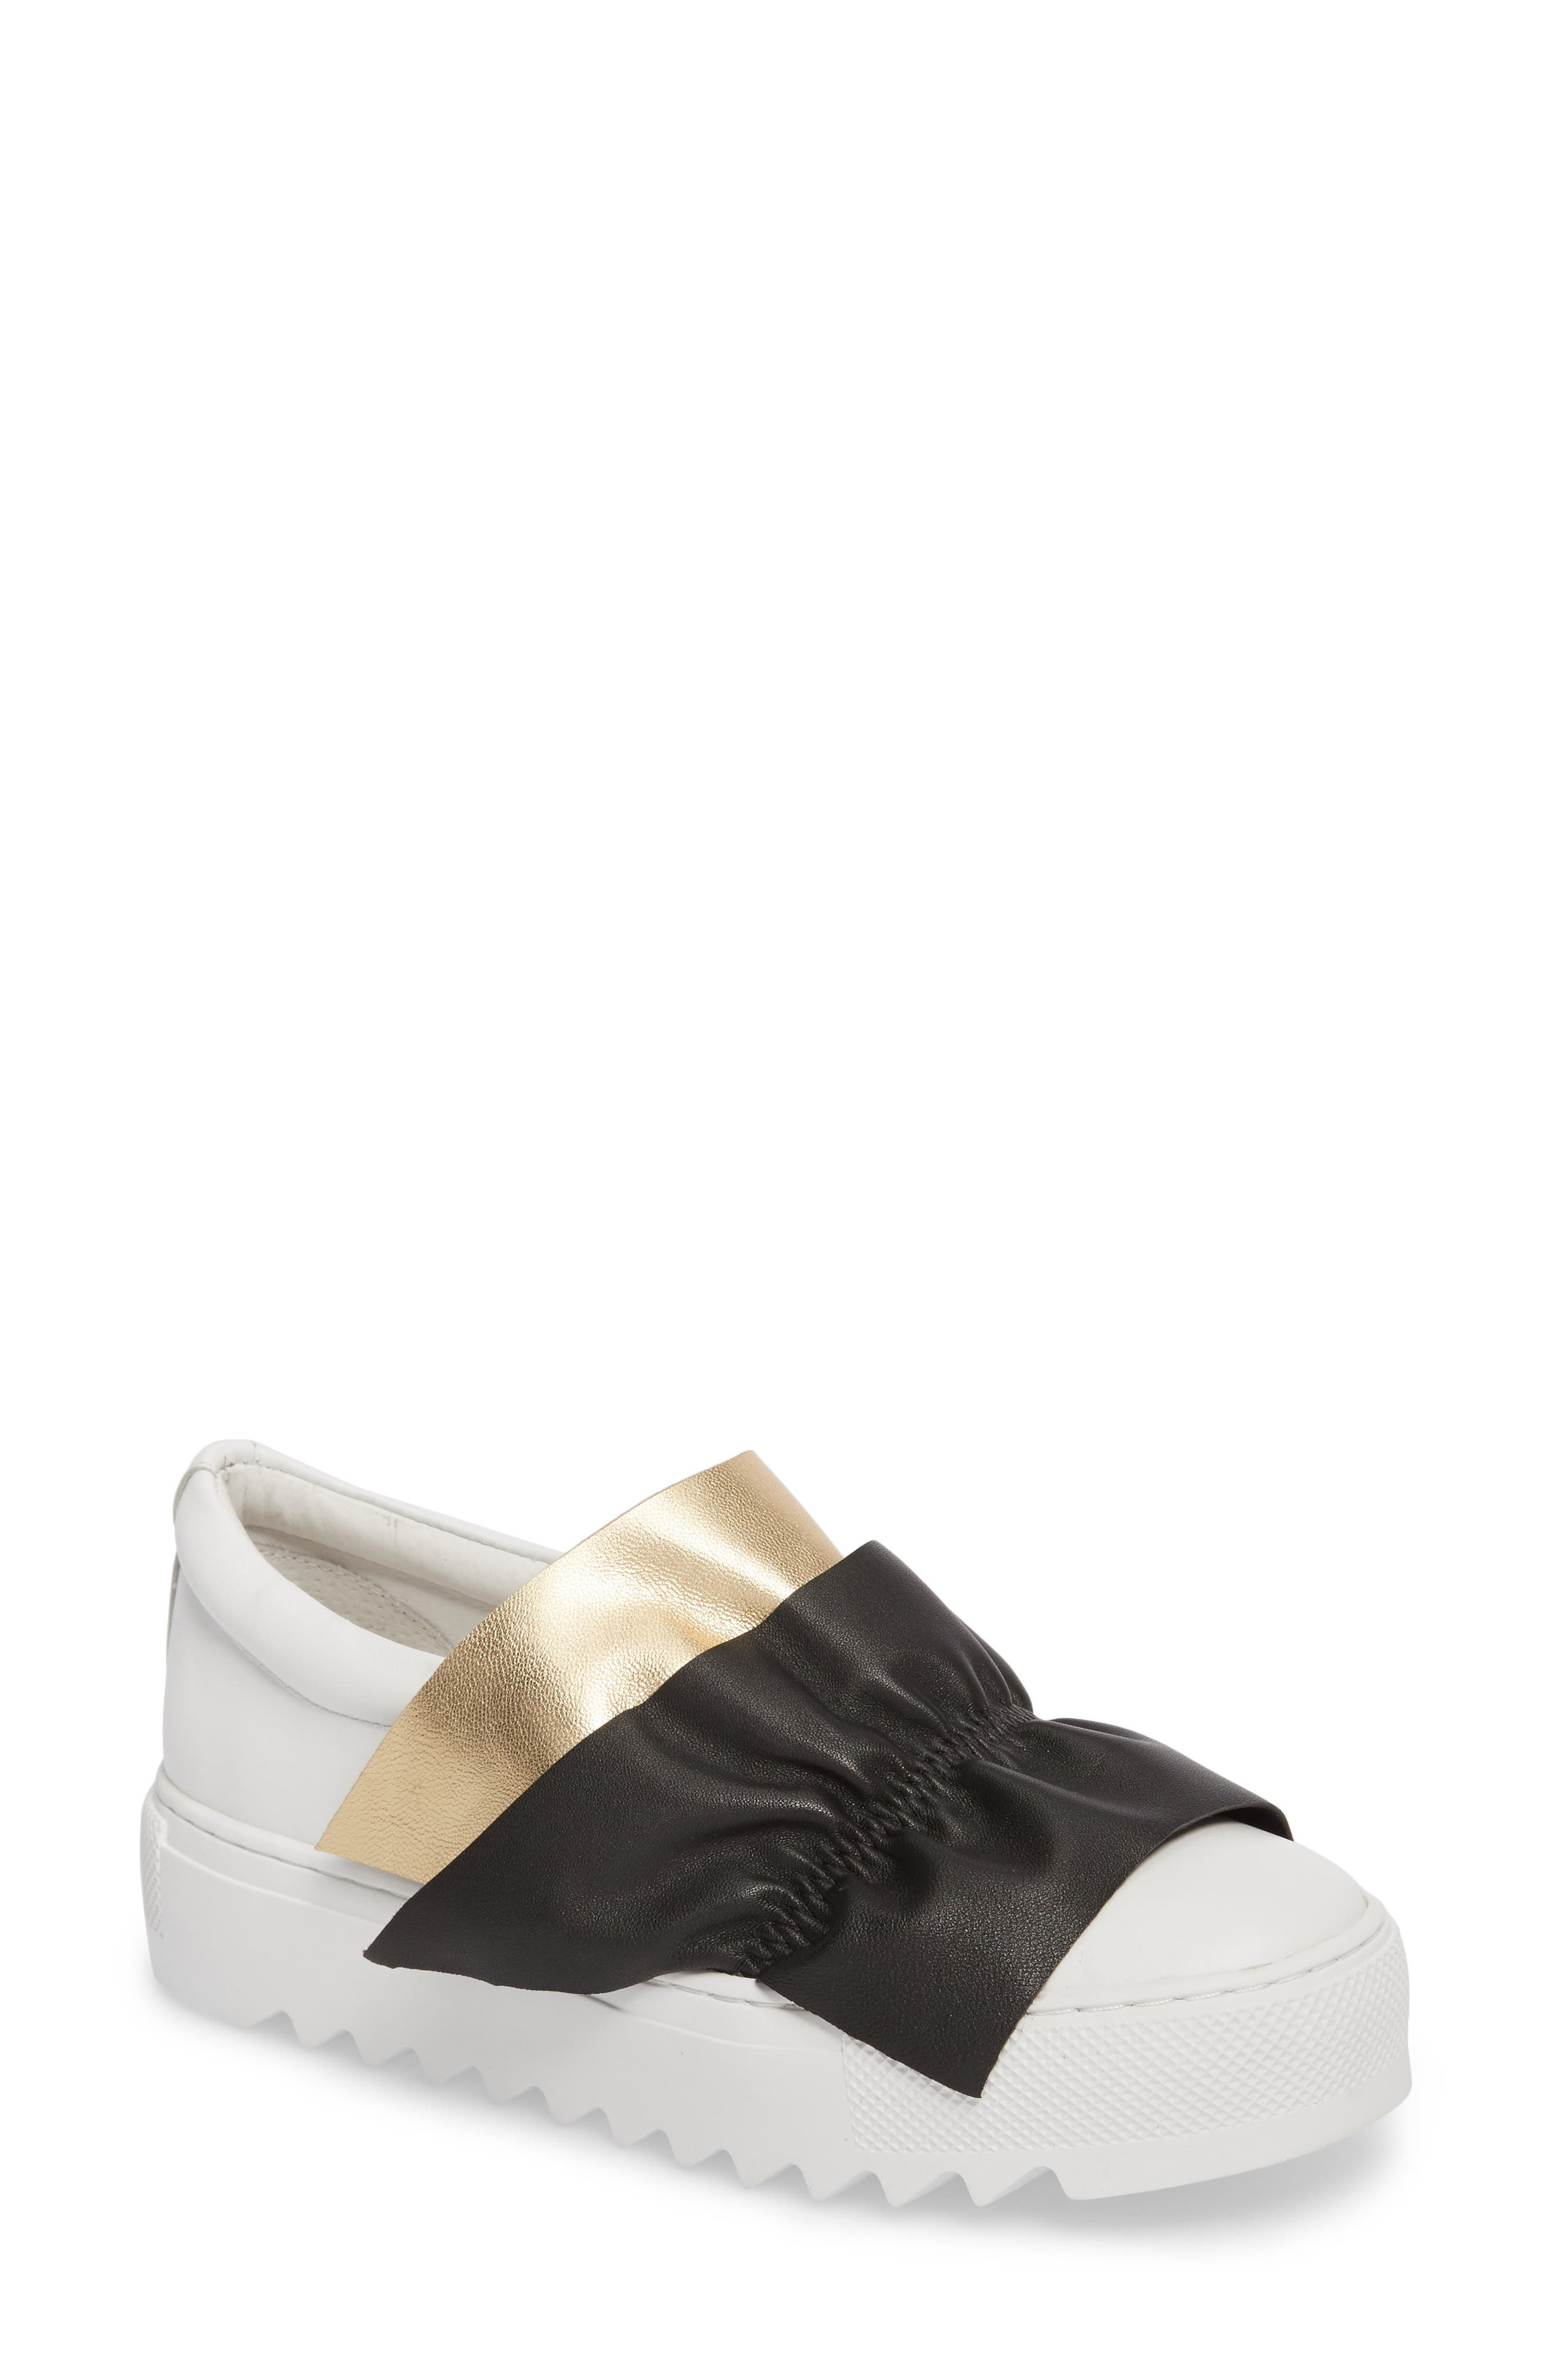 Sadie Ruffle Platform Sneaker,                         Main,                         color, WHITE LEATHER